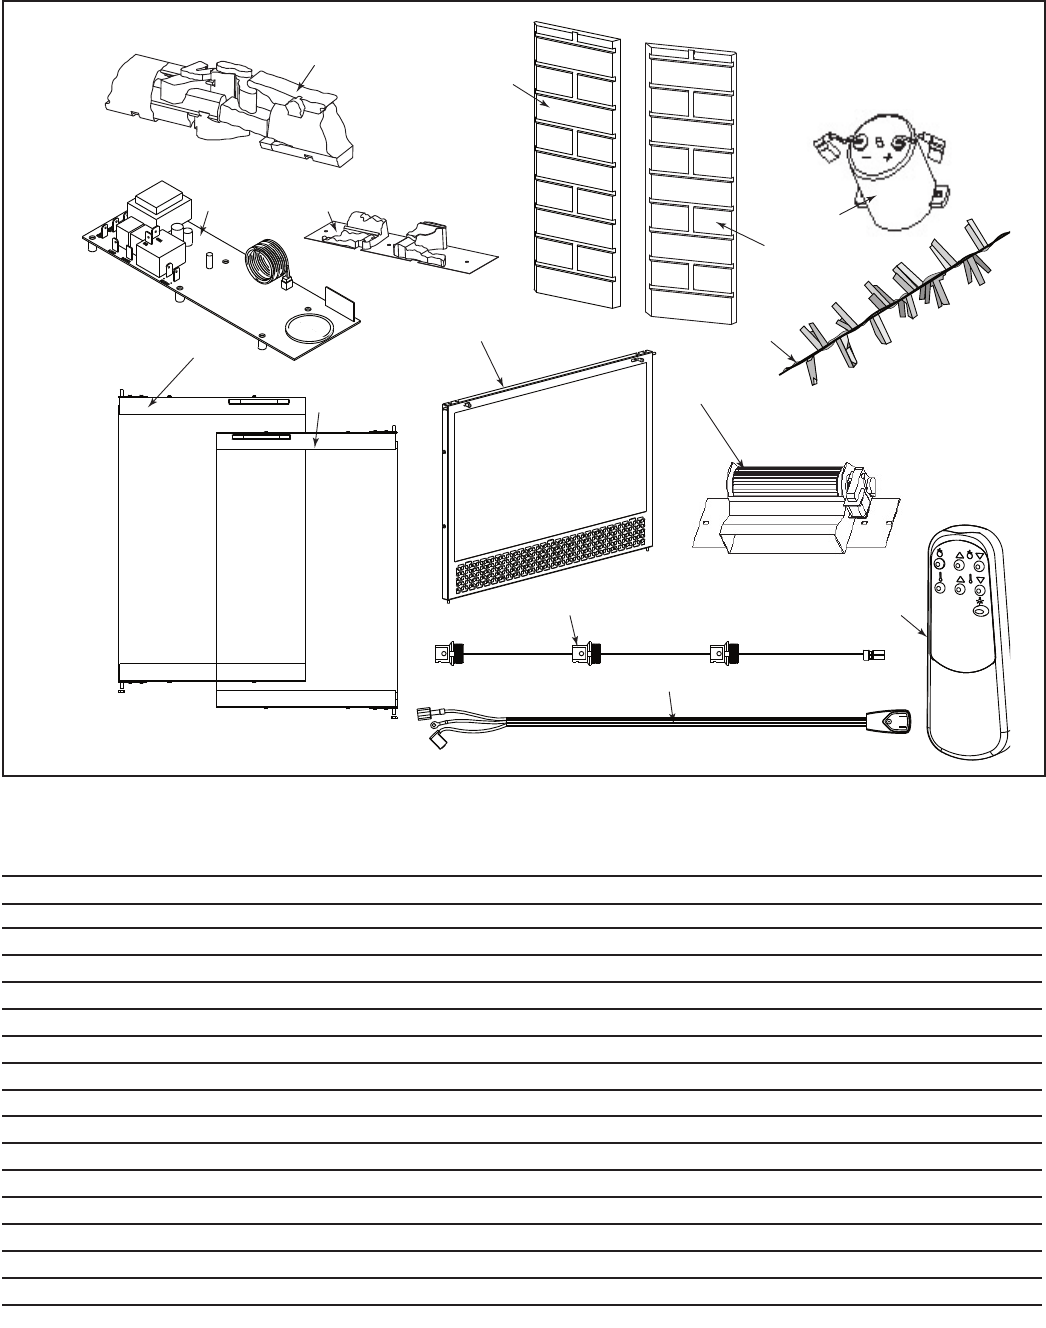 page 15 of cfm corporation indoor fireplace ef36 user guide rh homeappliance manualsonline com Example User Guide User Guide Template